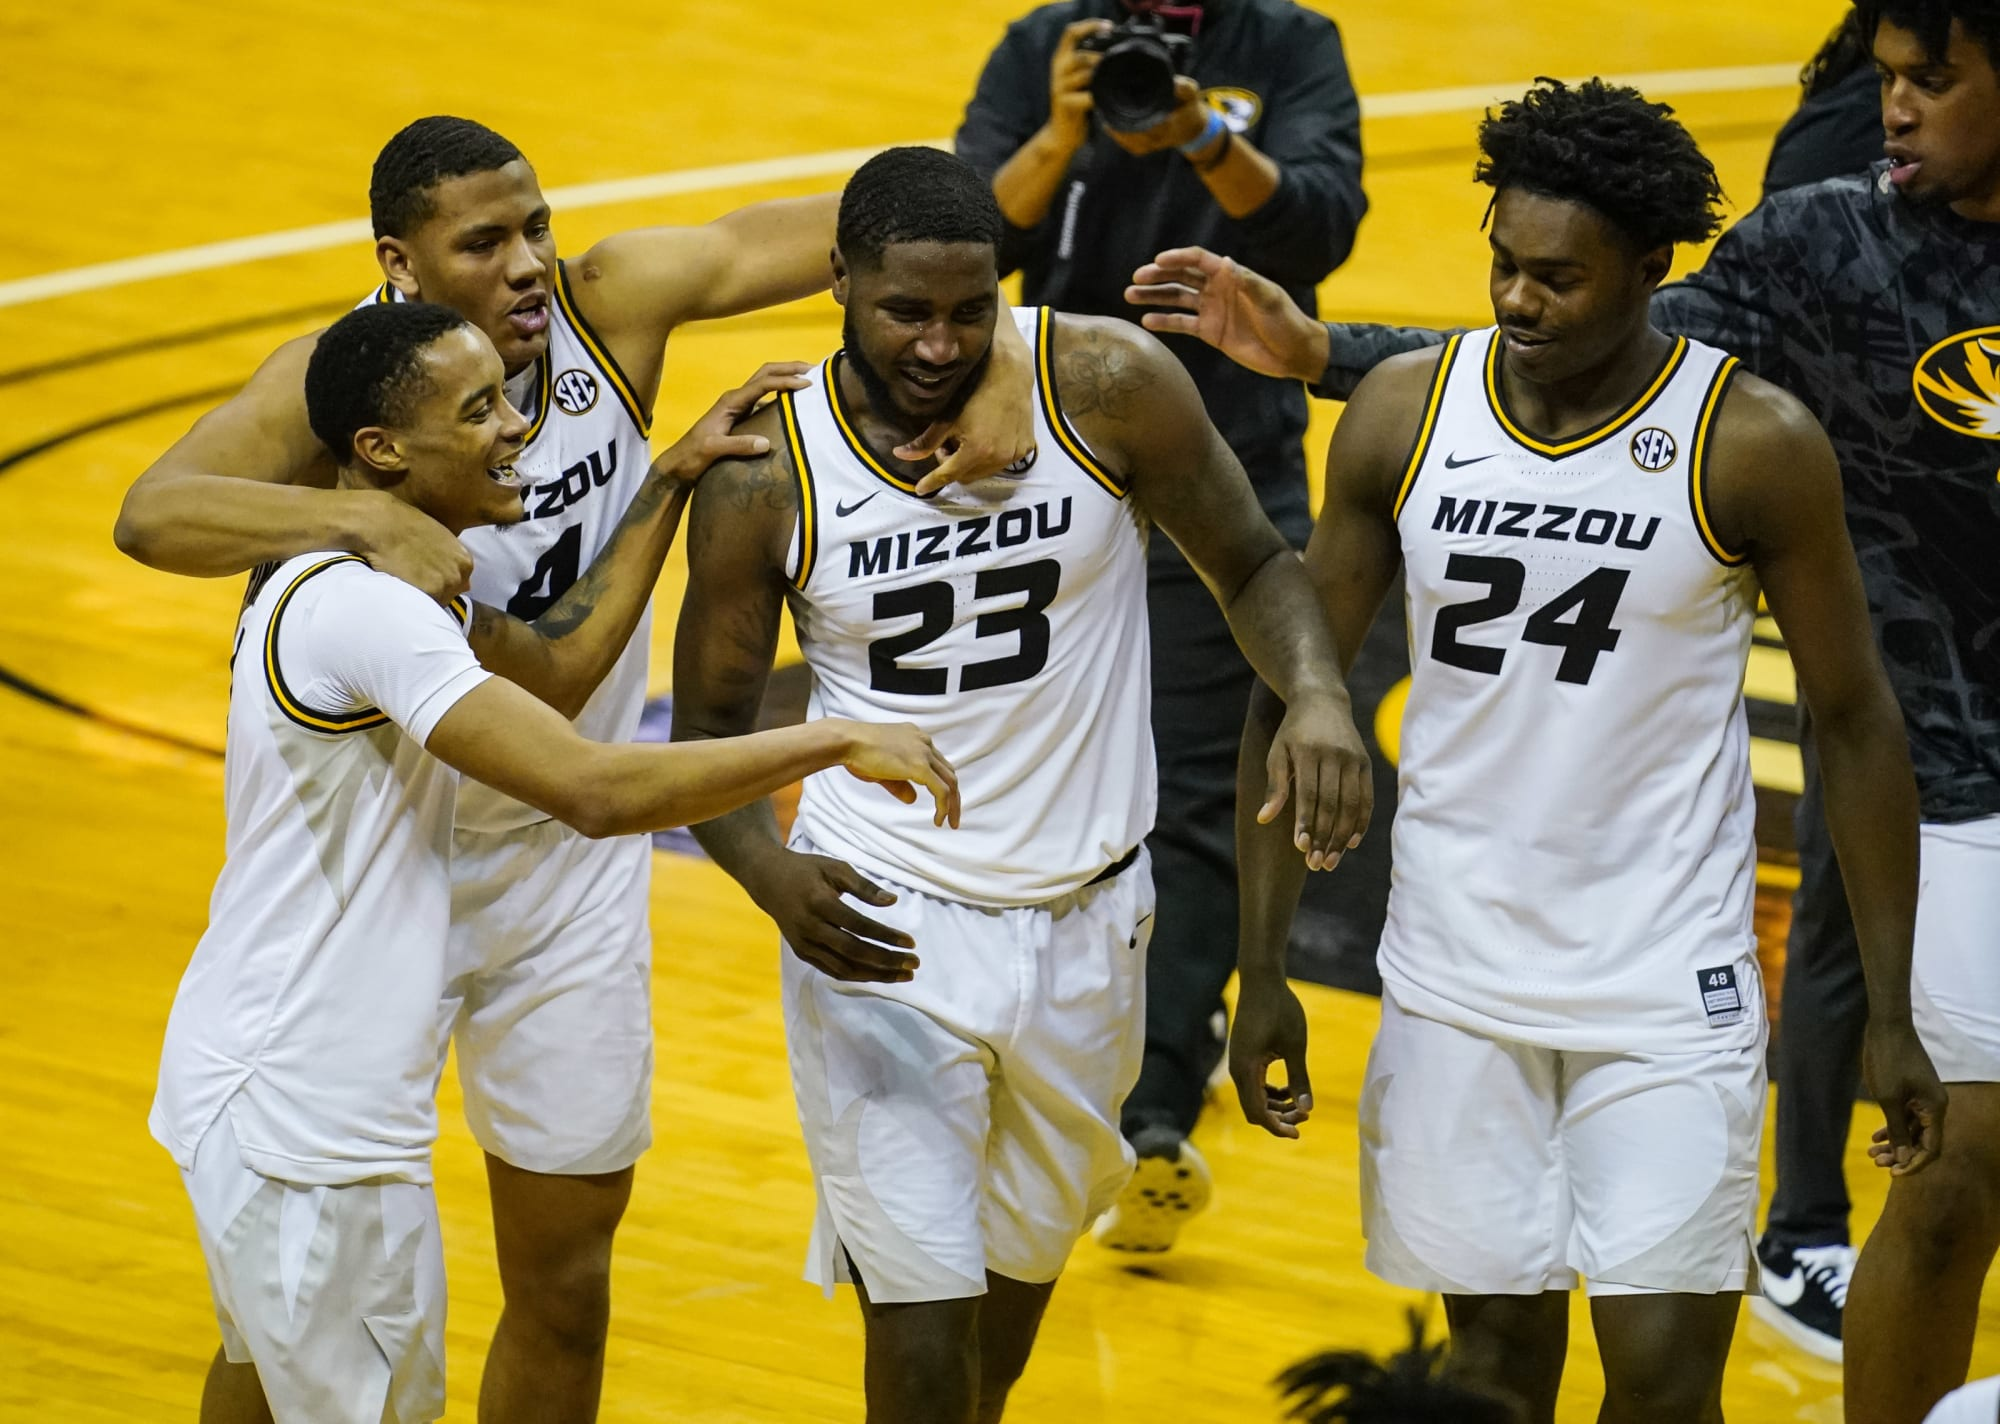 Missouri Basketball: Where do Tigers rank in the SEC after Tennessee win?